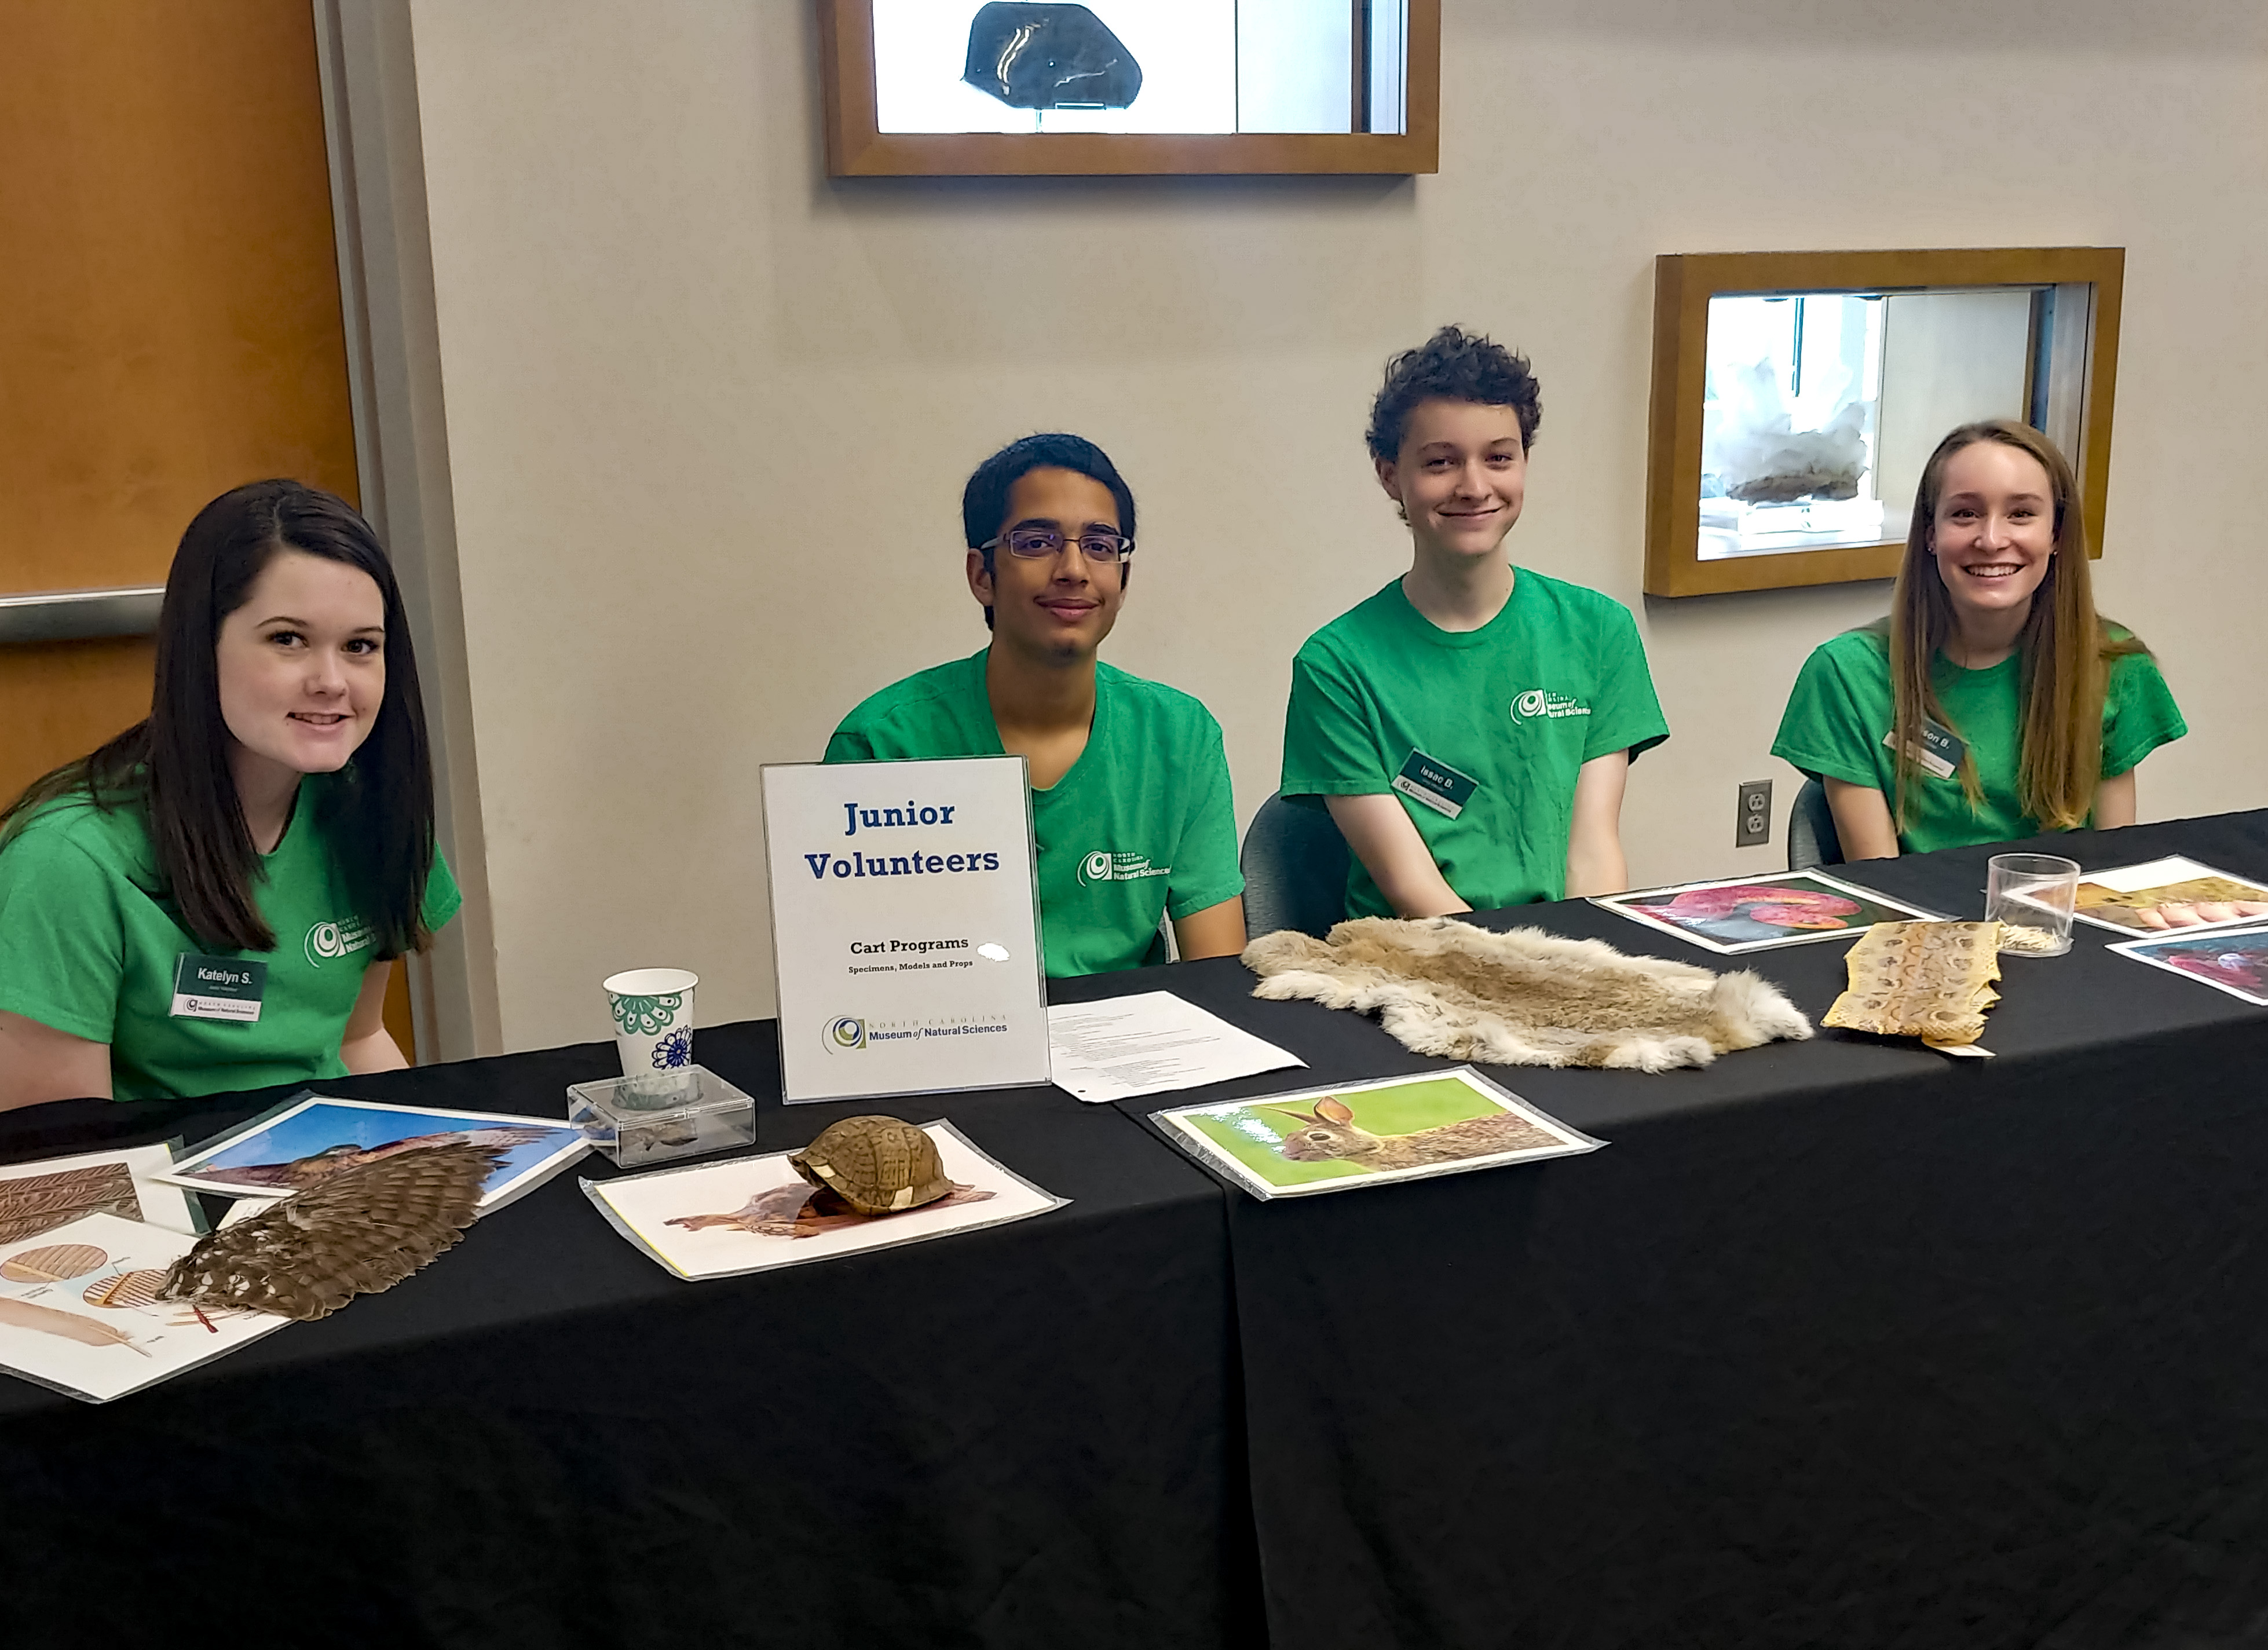 Junior Volunteers staff a table at the 2017 Teen Volunteer Fair.